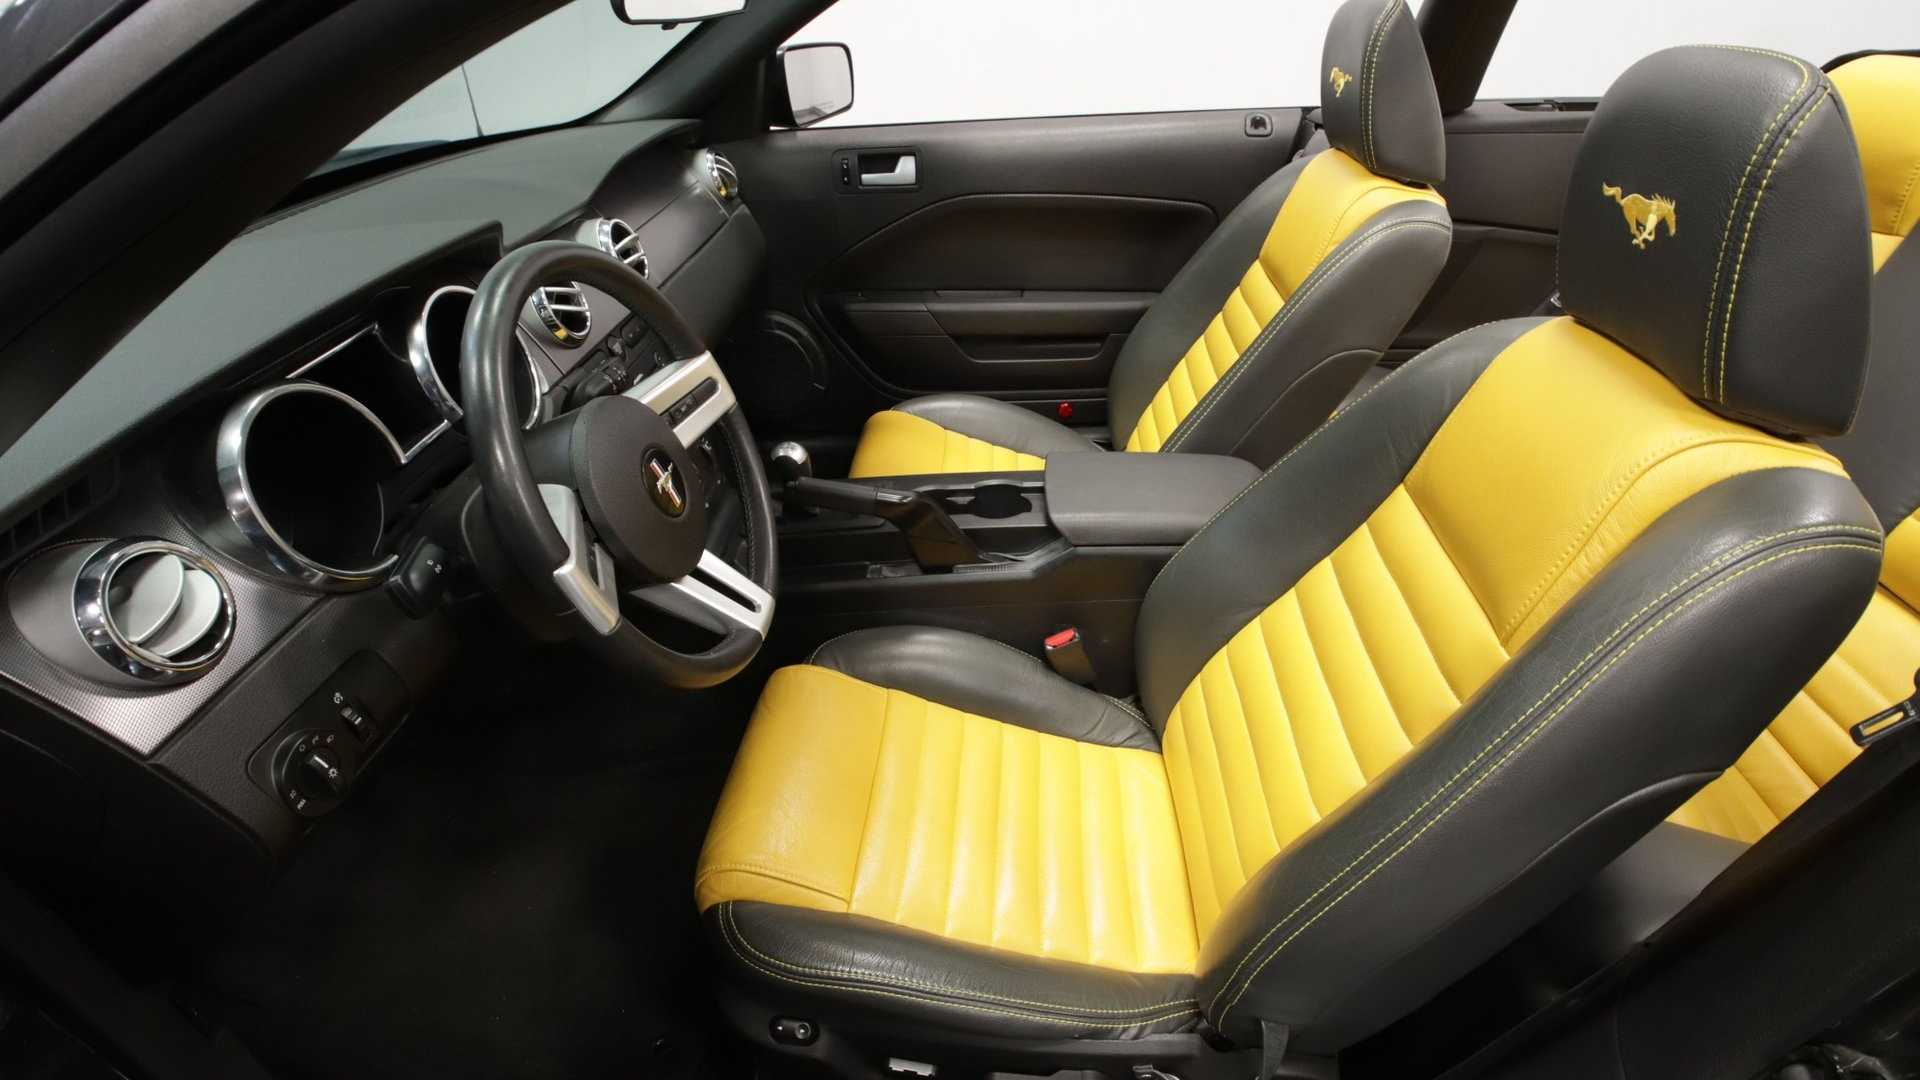 Tremendous Steal The Show In This 2007 Ford Mustang Gt Convertible Beatyapartments Chair Design Images Beatyapartmentscom